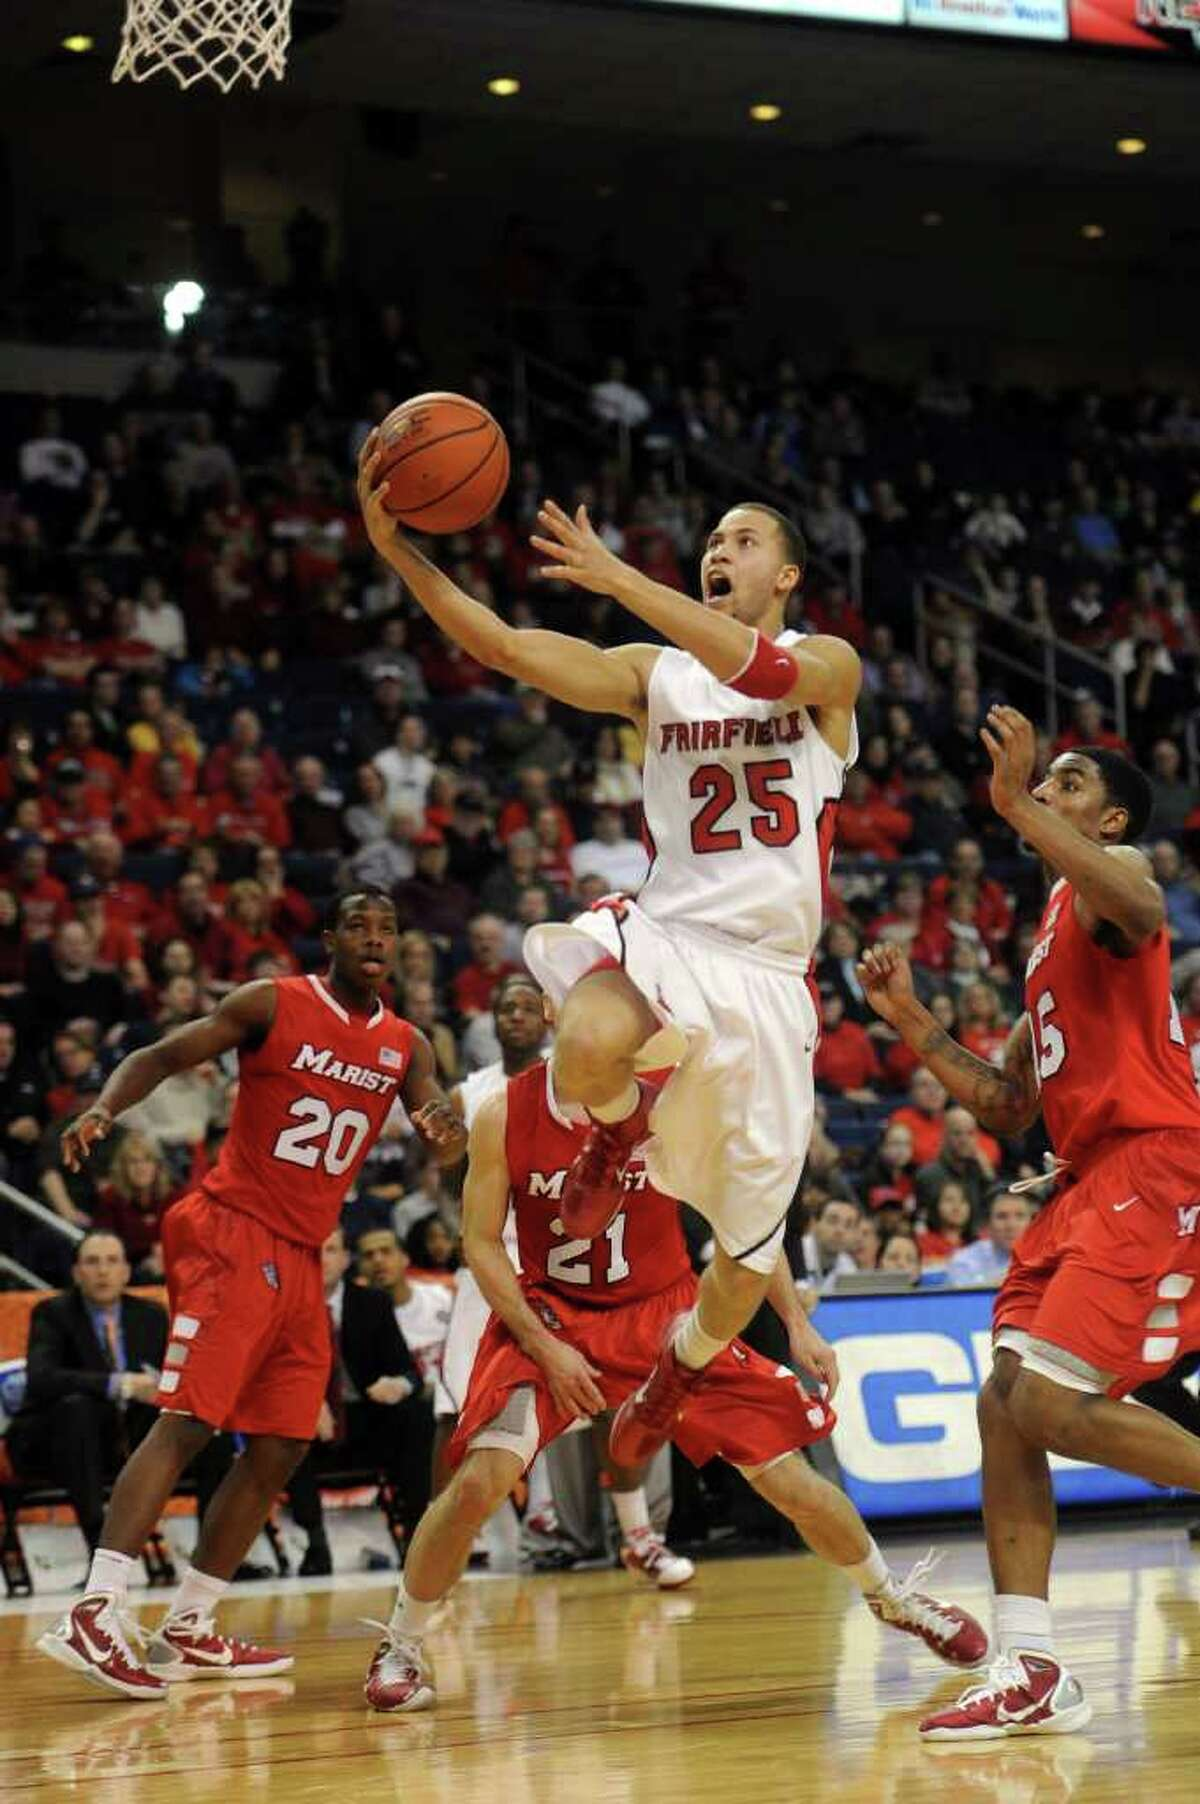 Fairfield University's Colin Nickerson takes a shot during Saturday's MAAC quarterfinal game at Webster Bank Arena at Harbor Yard on March 5, 2011.